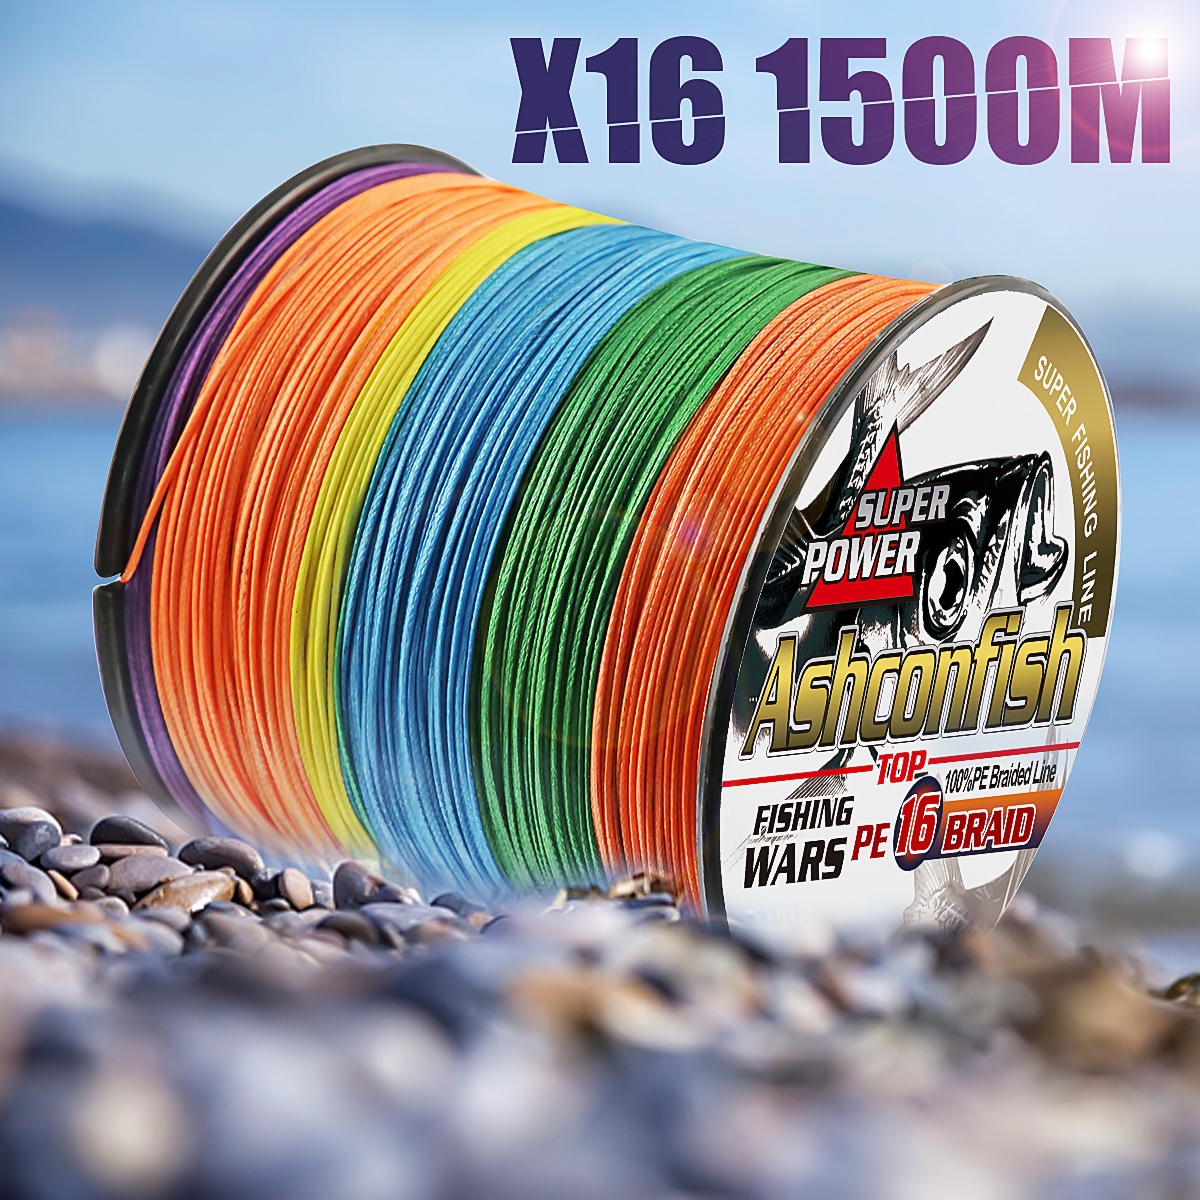 16 Strands super strong braided fishing line pe hollowcore 1500M wire carp fishing saltwater 20 30 60 130 150 200 300 400 500LBS - 2